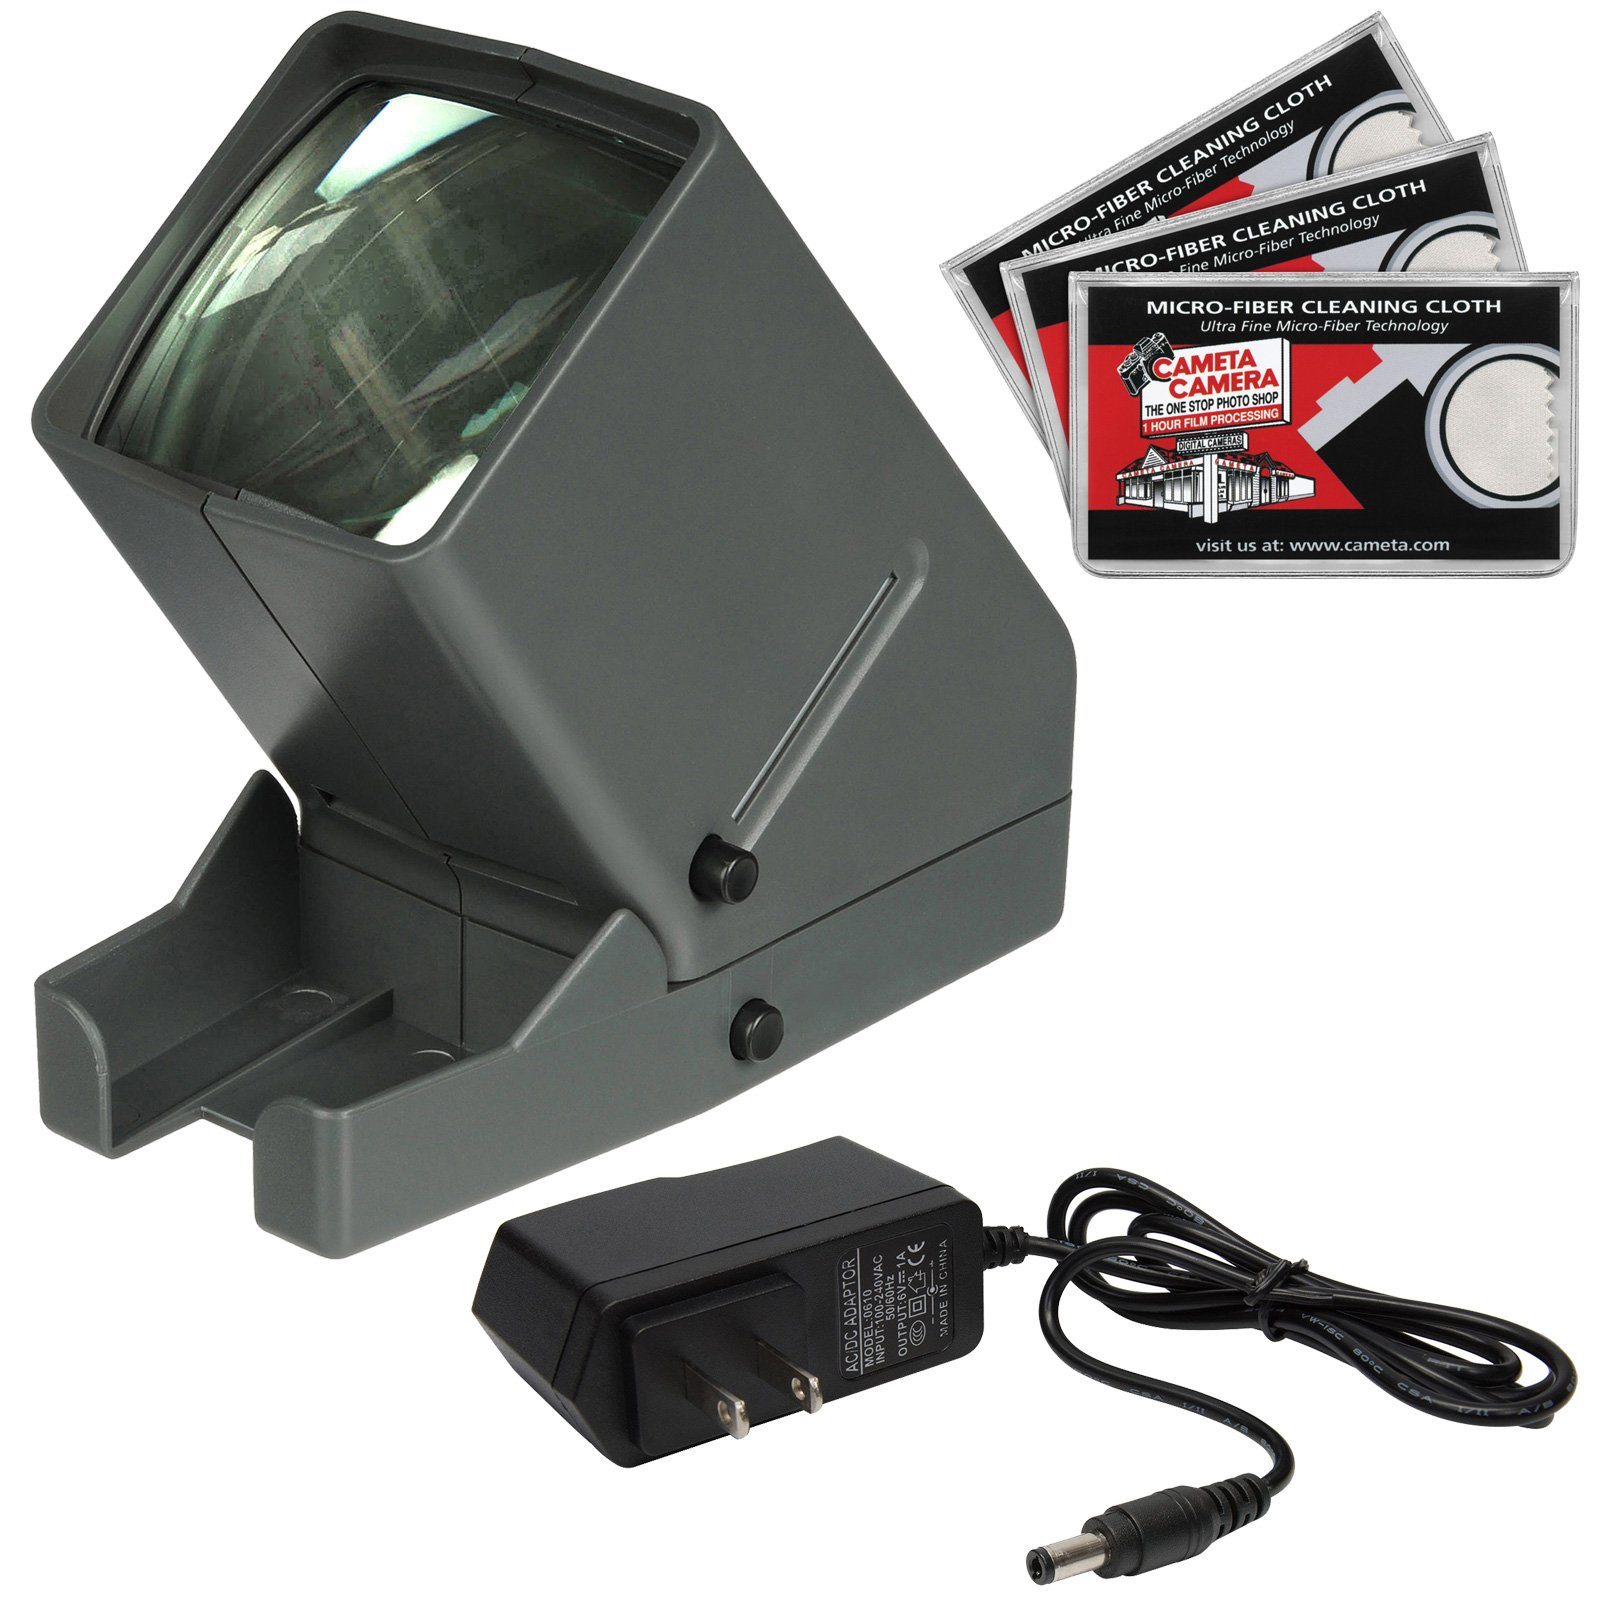 Zuma SV-3 LED 35mm Film Slide and Negative Viewer with AC Adapter + Cleaning Cloths by Zuma